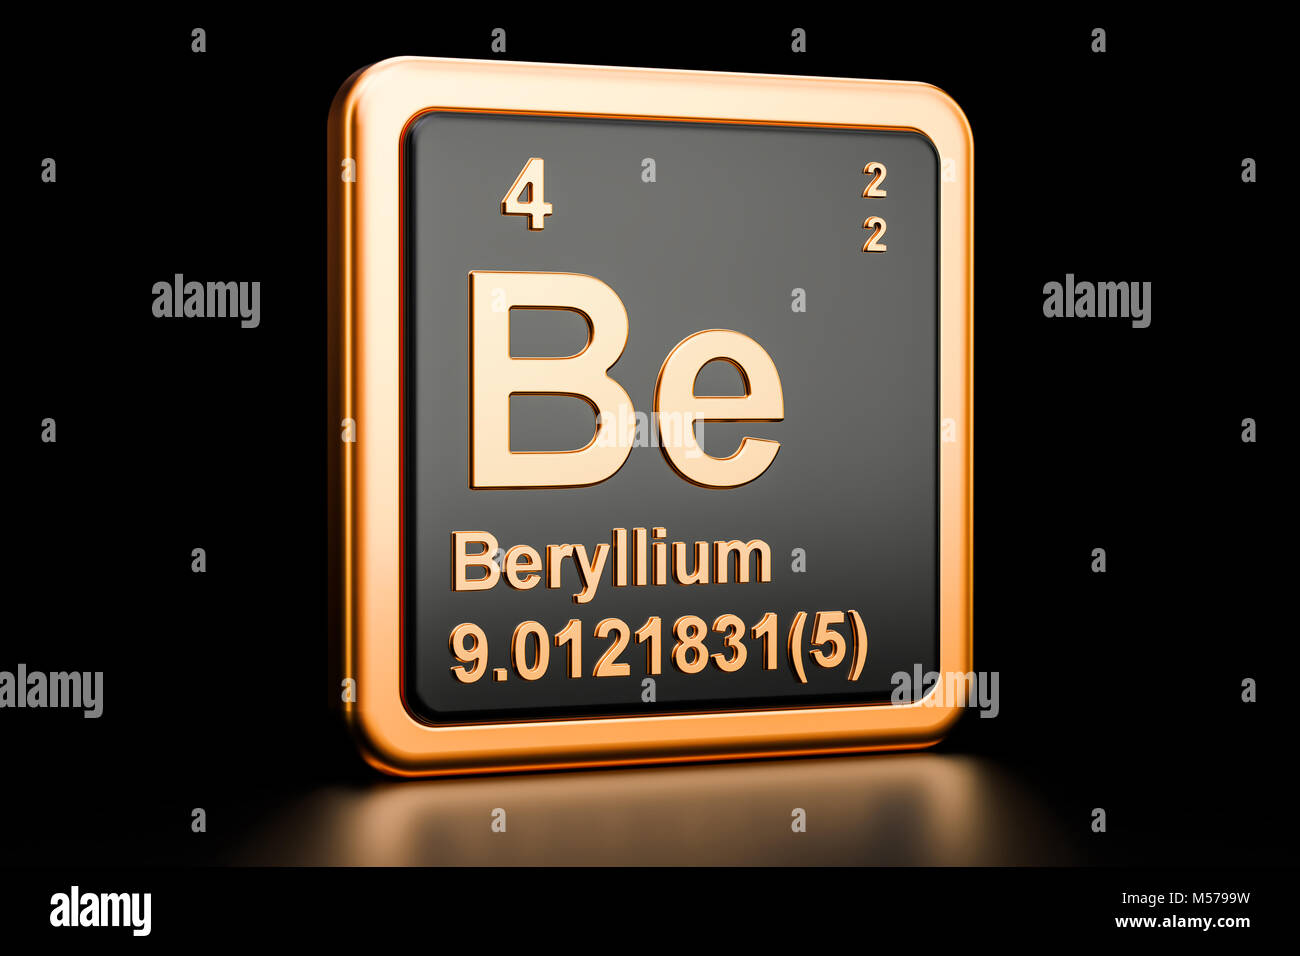 Beryllium chemical element periodic table stock photos beryllium beryllium be chemical element 3d rendering isolated on black background stock image buycottarizona Image collections